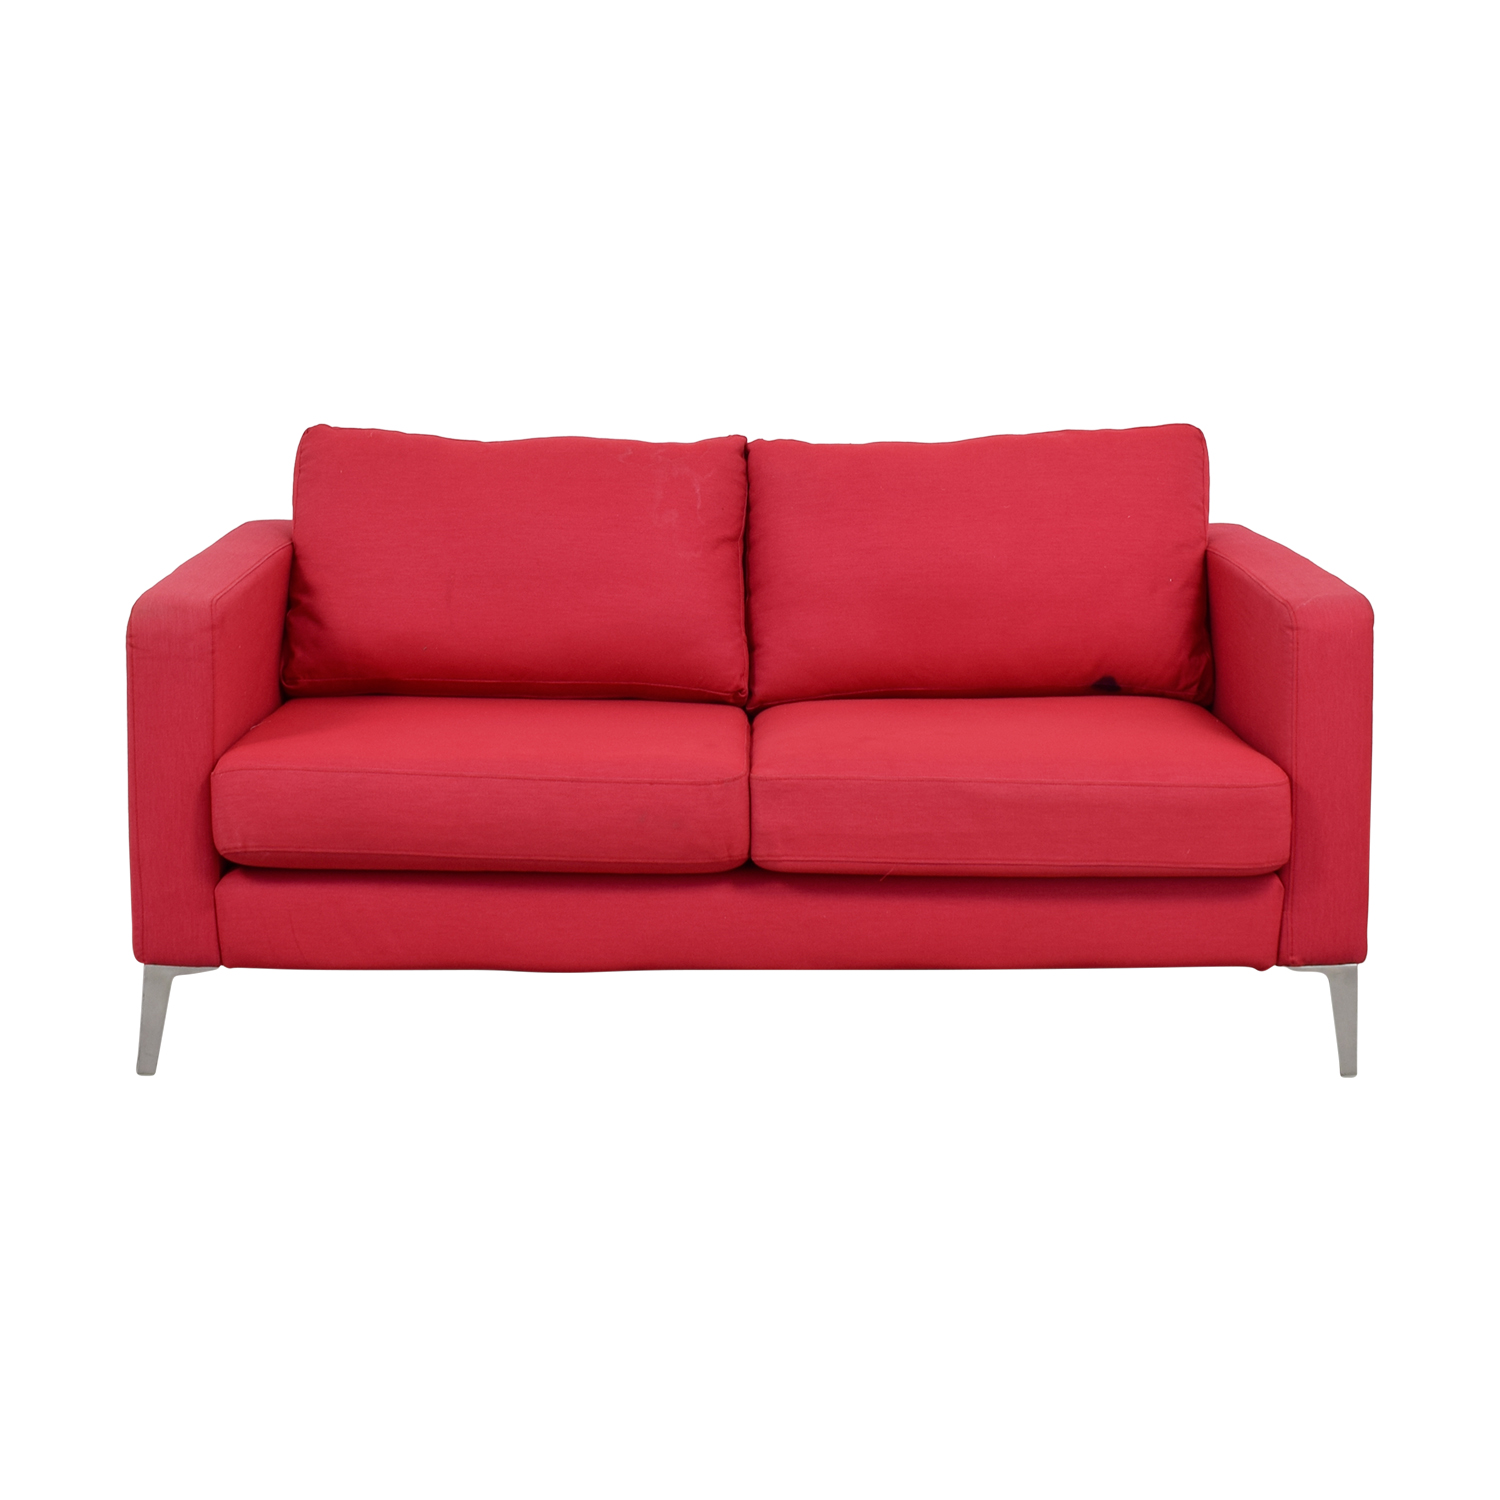 OFF IKEA IKEA Red Two Cushion Love Seat Sofas